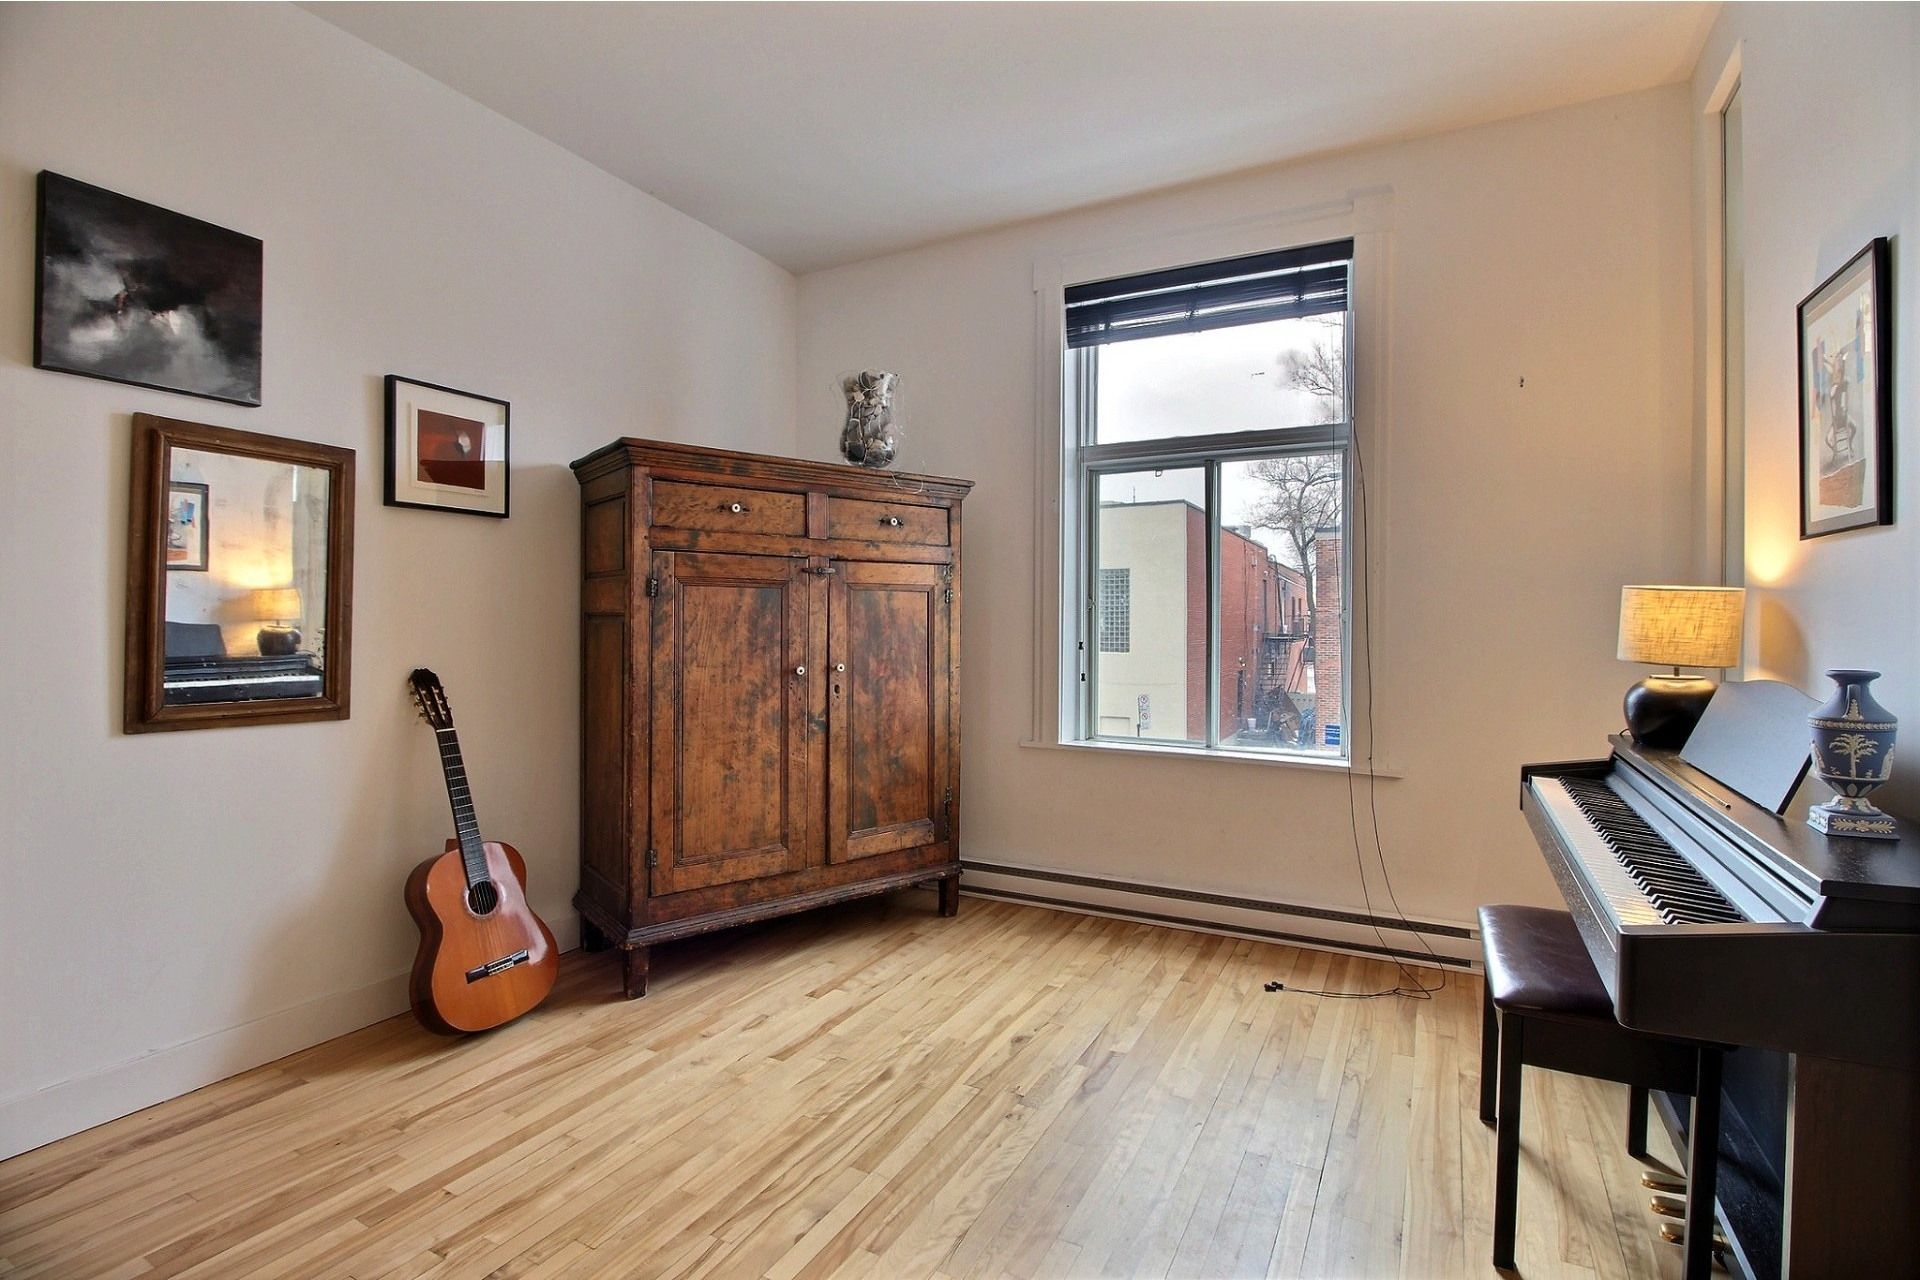 image 4 - Apartment For rent Montréal Ahuntsic-Cartierville  - 2 rooms